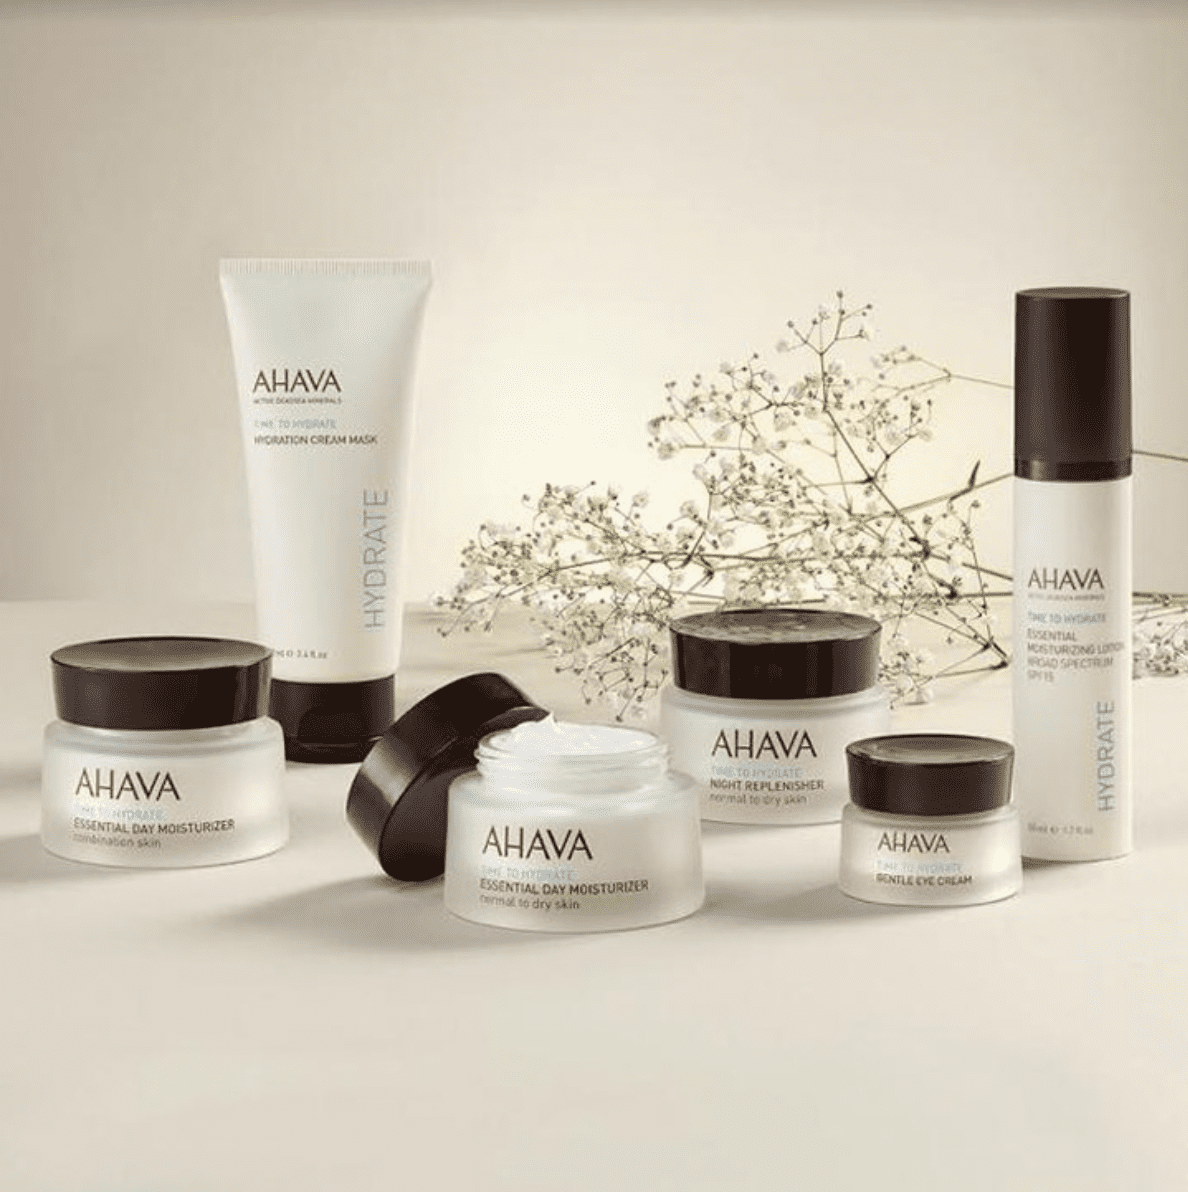 AHAVA: July 4th sale event! Up to 30% off!